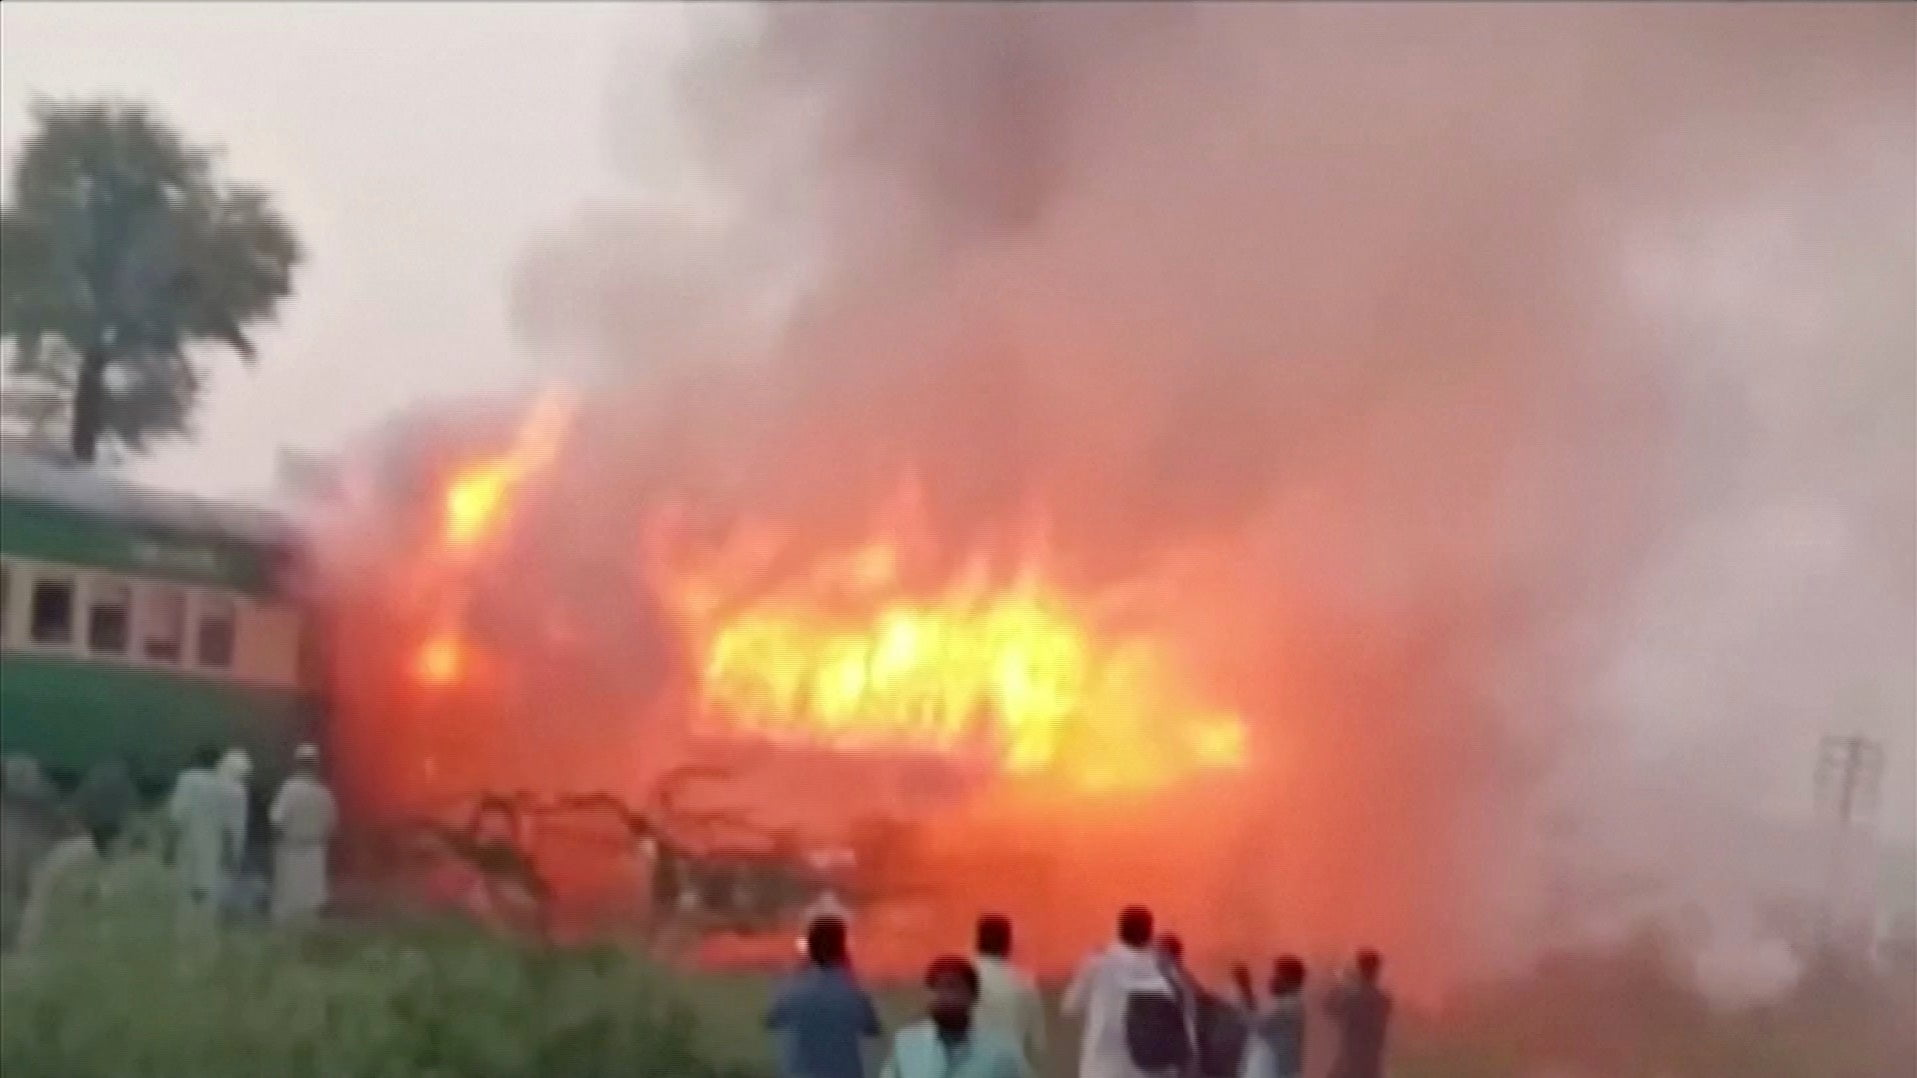 The death toll rises to 65 on a train fire in northern Pakistan